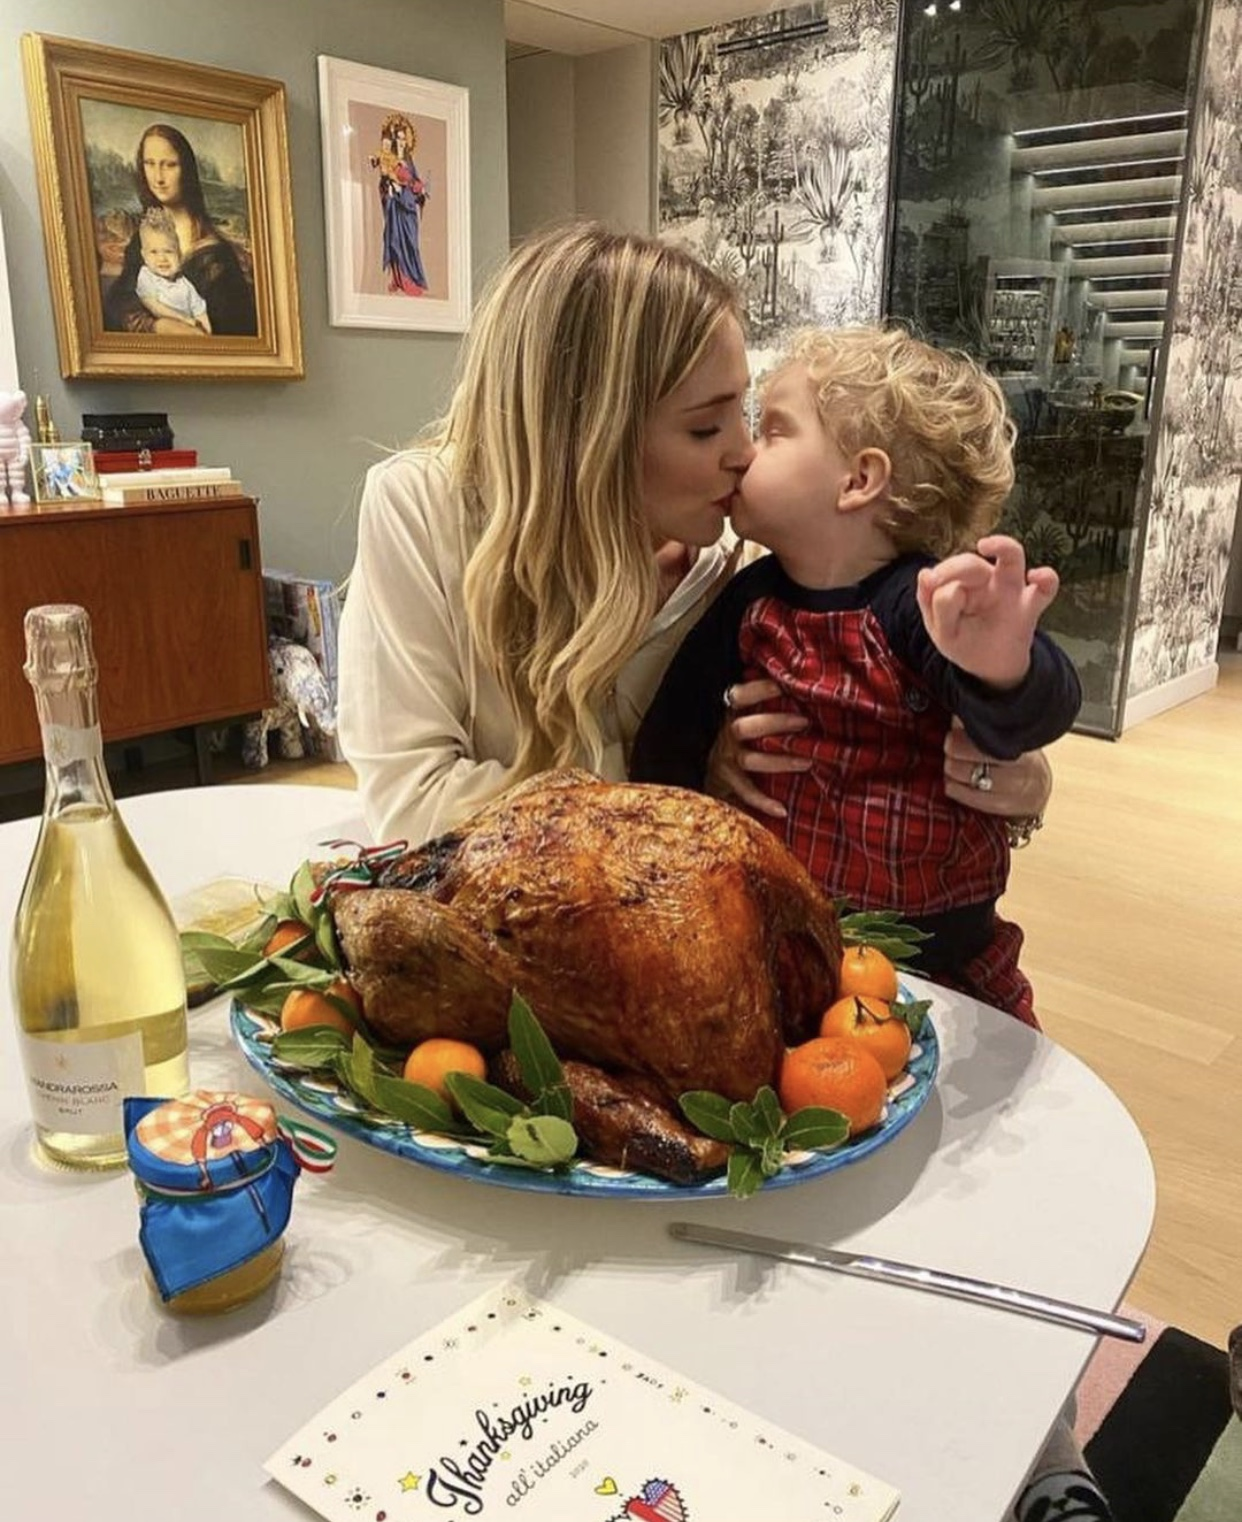 Chiara Ferragni celebrates Thanksgiving in Milan